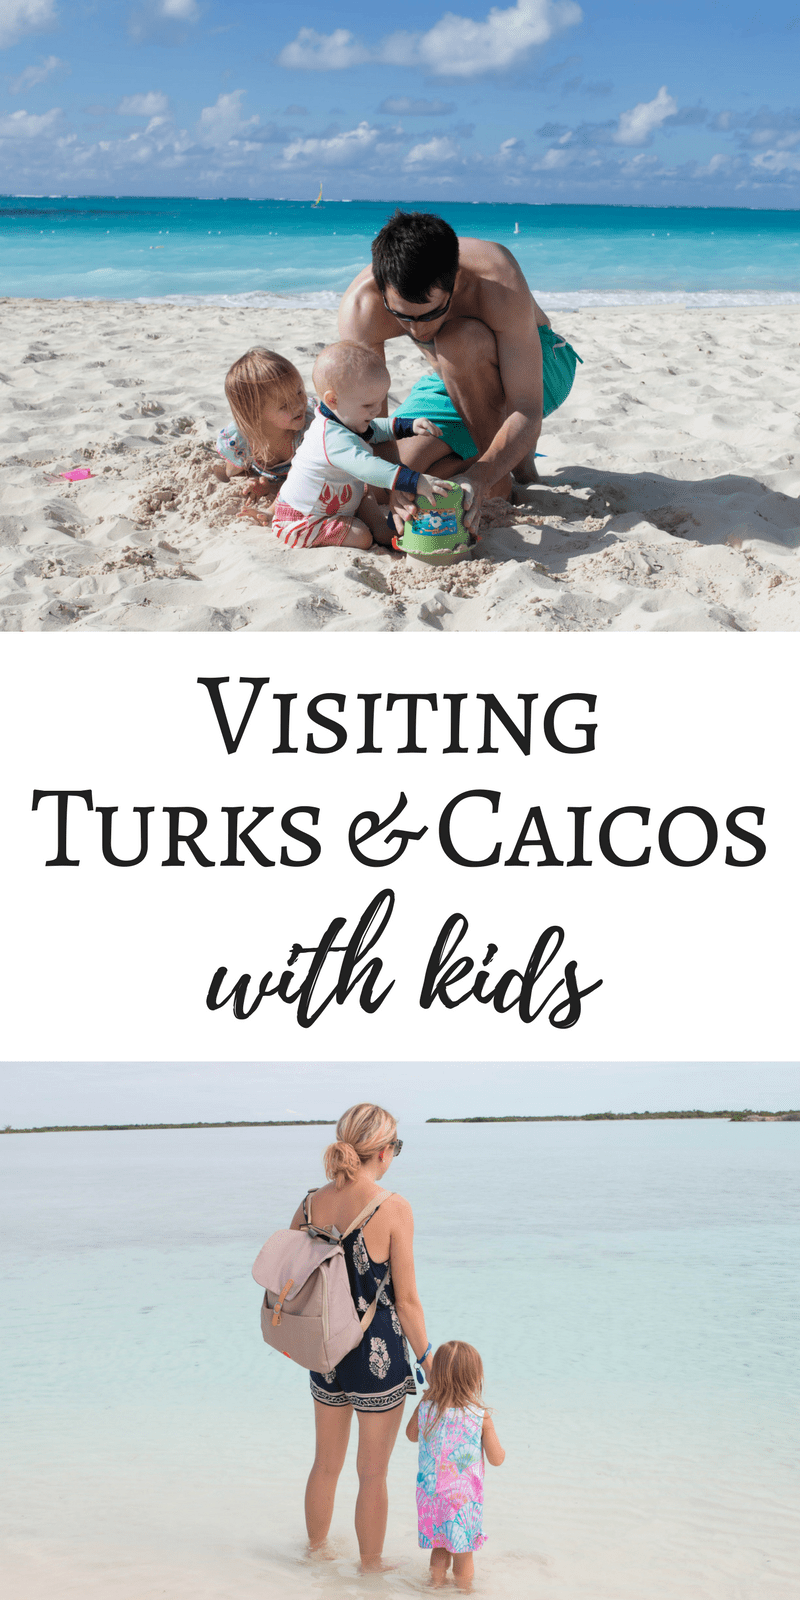 visiting turks & caicos with kids